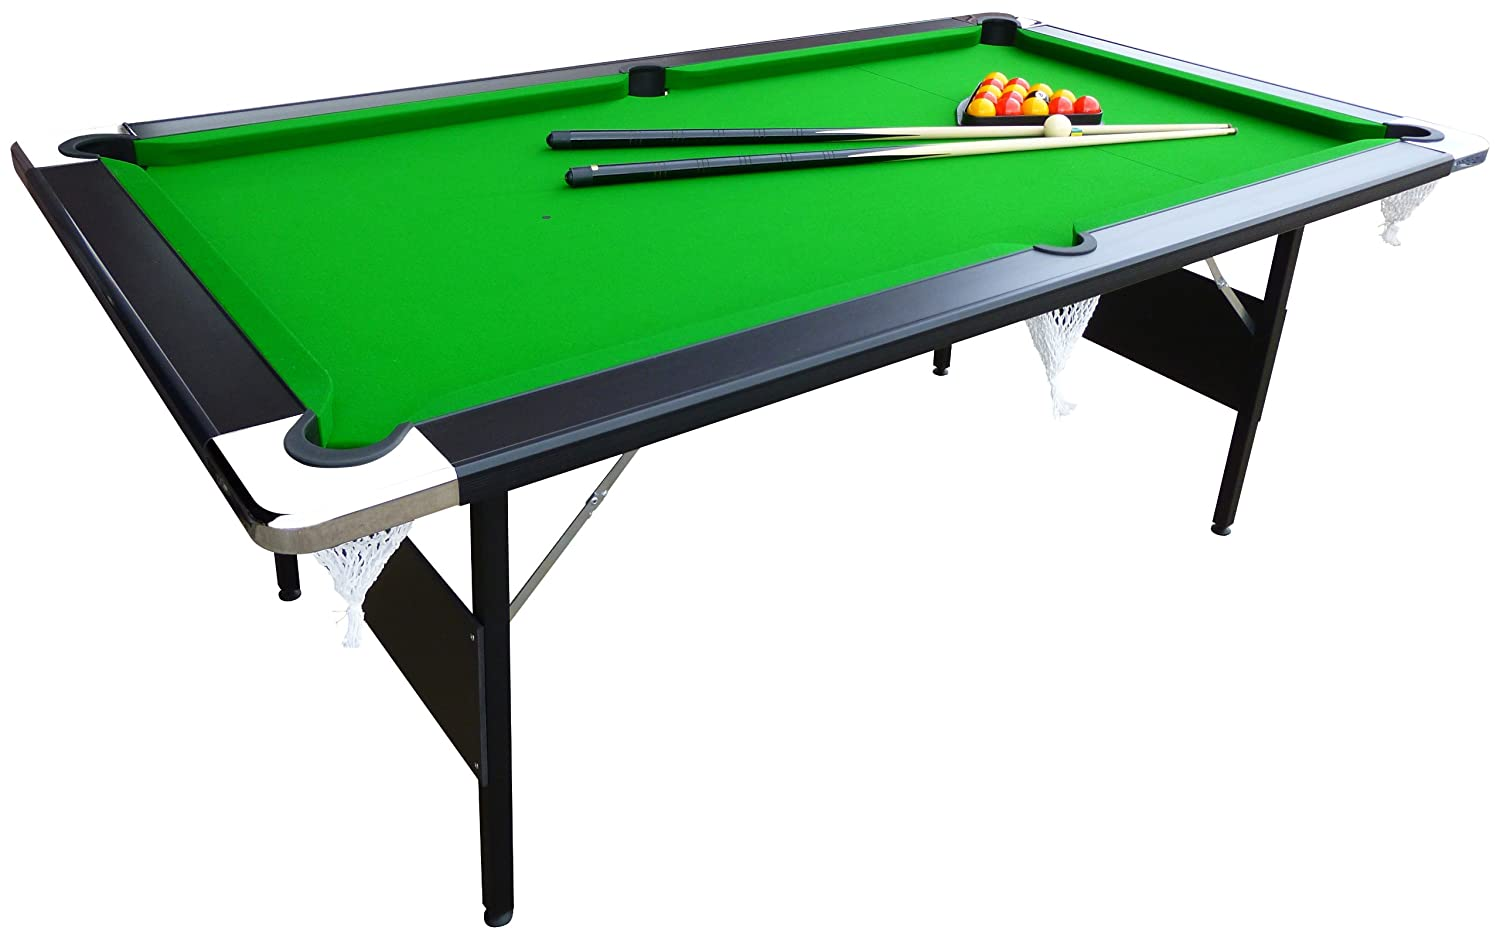 Awesome Mightymast Leisure Hustler Fold Up Pool Table   Green, 7 Ft: Amazon.co.uk:  Sports U0026 Outdoors